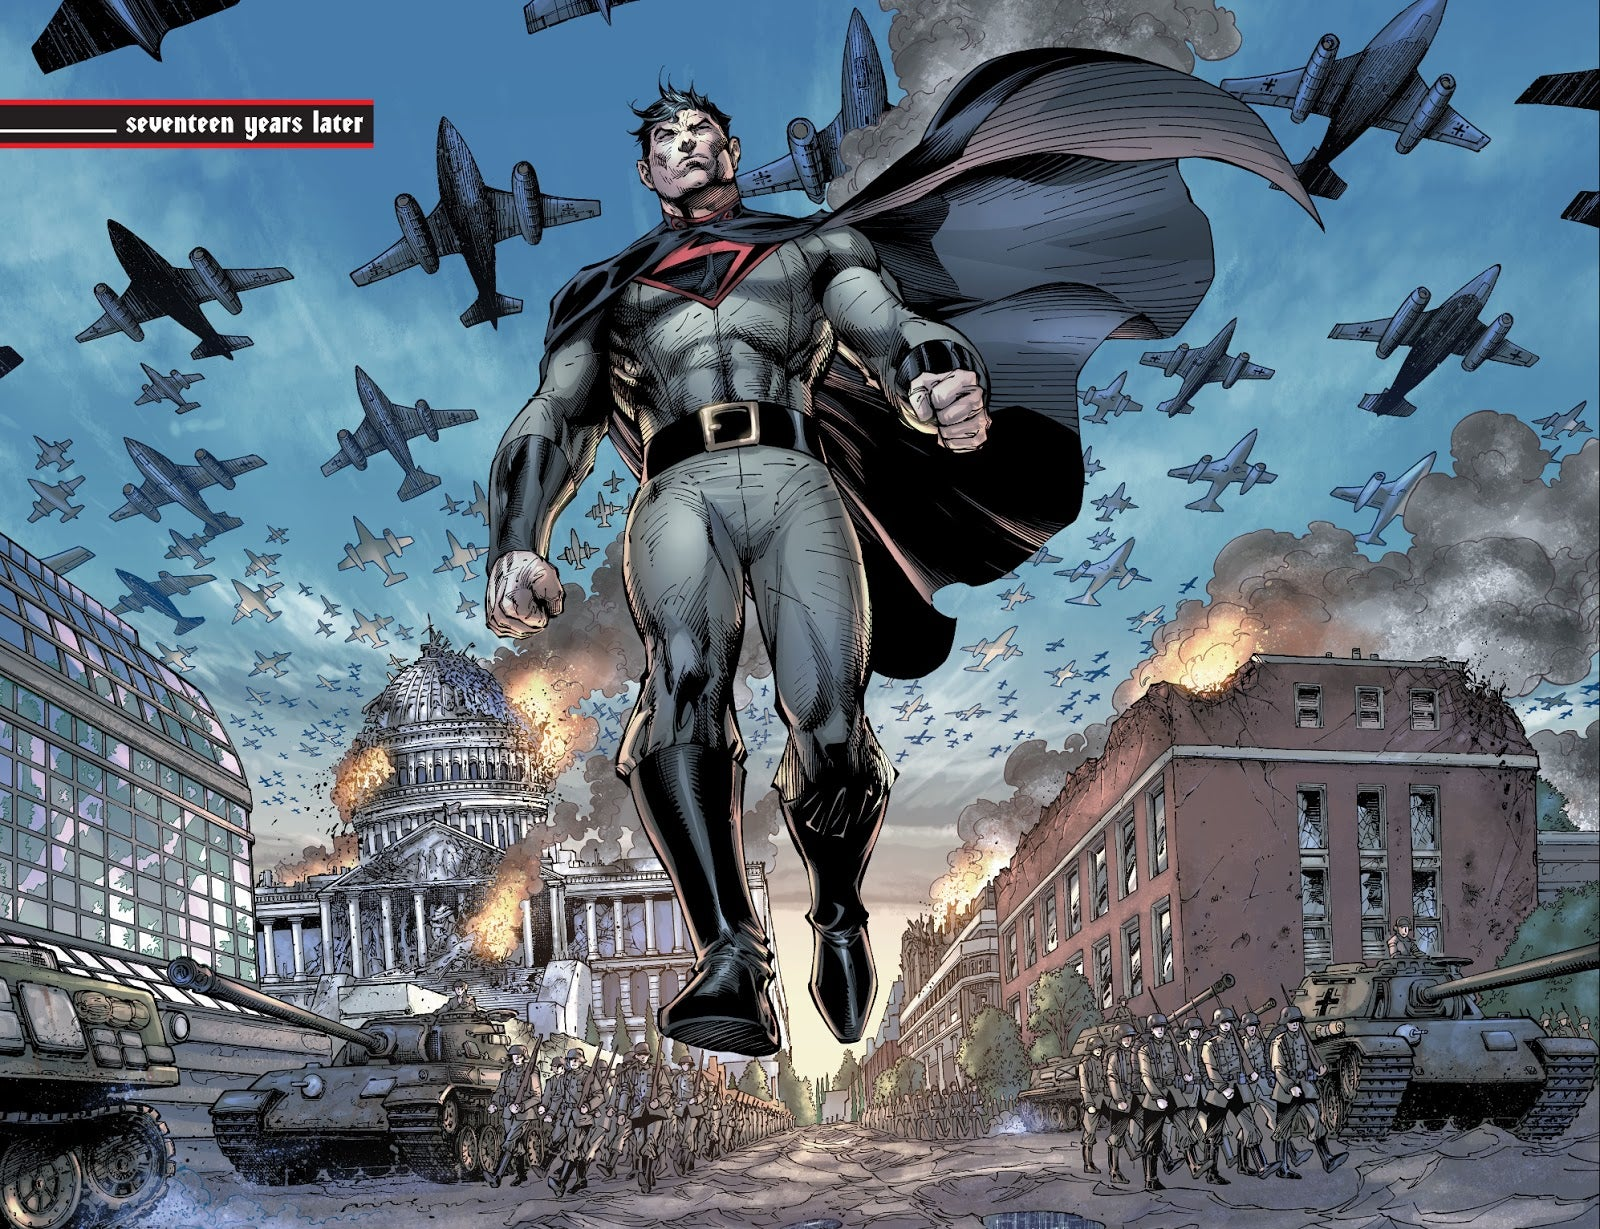 The Problem with a Nazi Superman